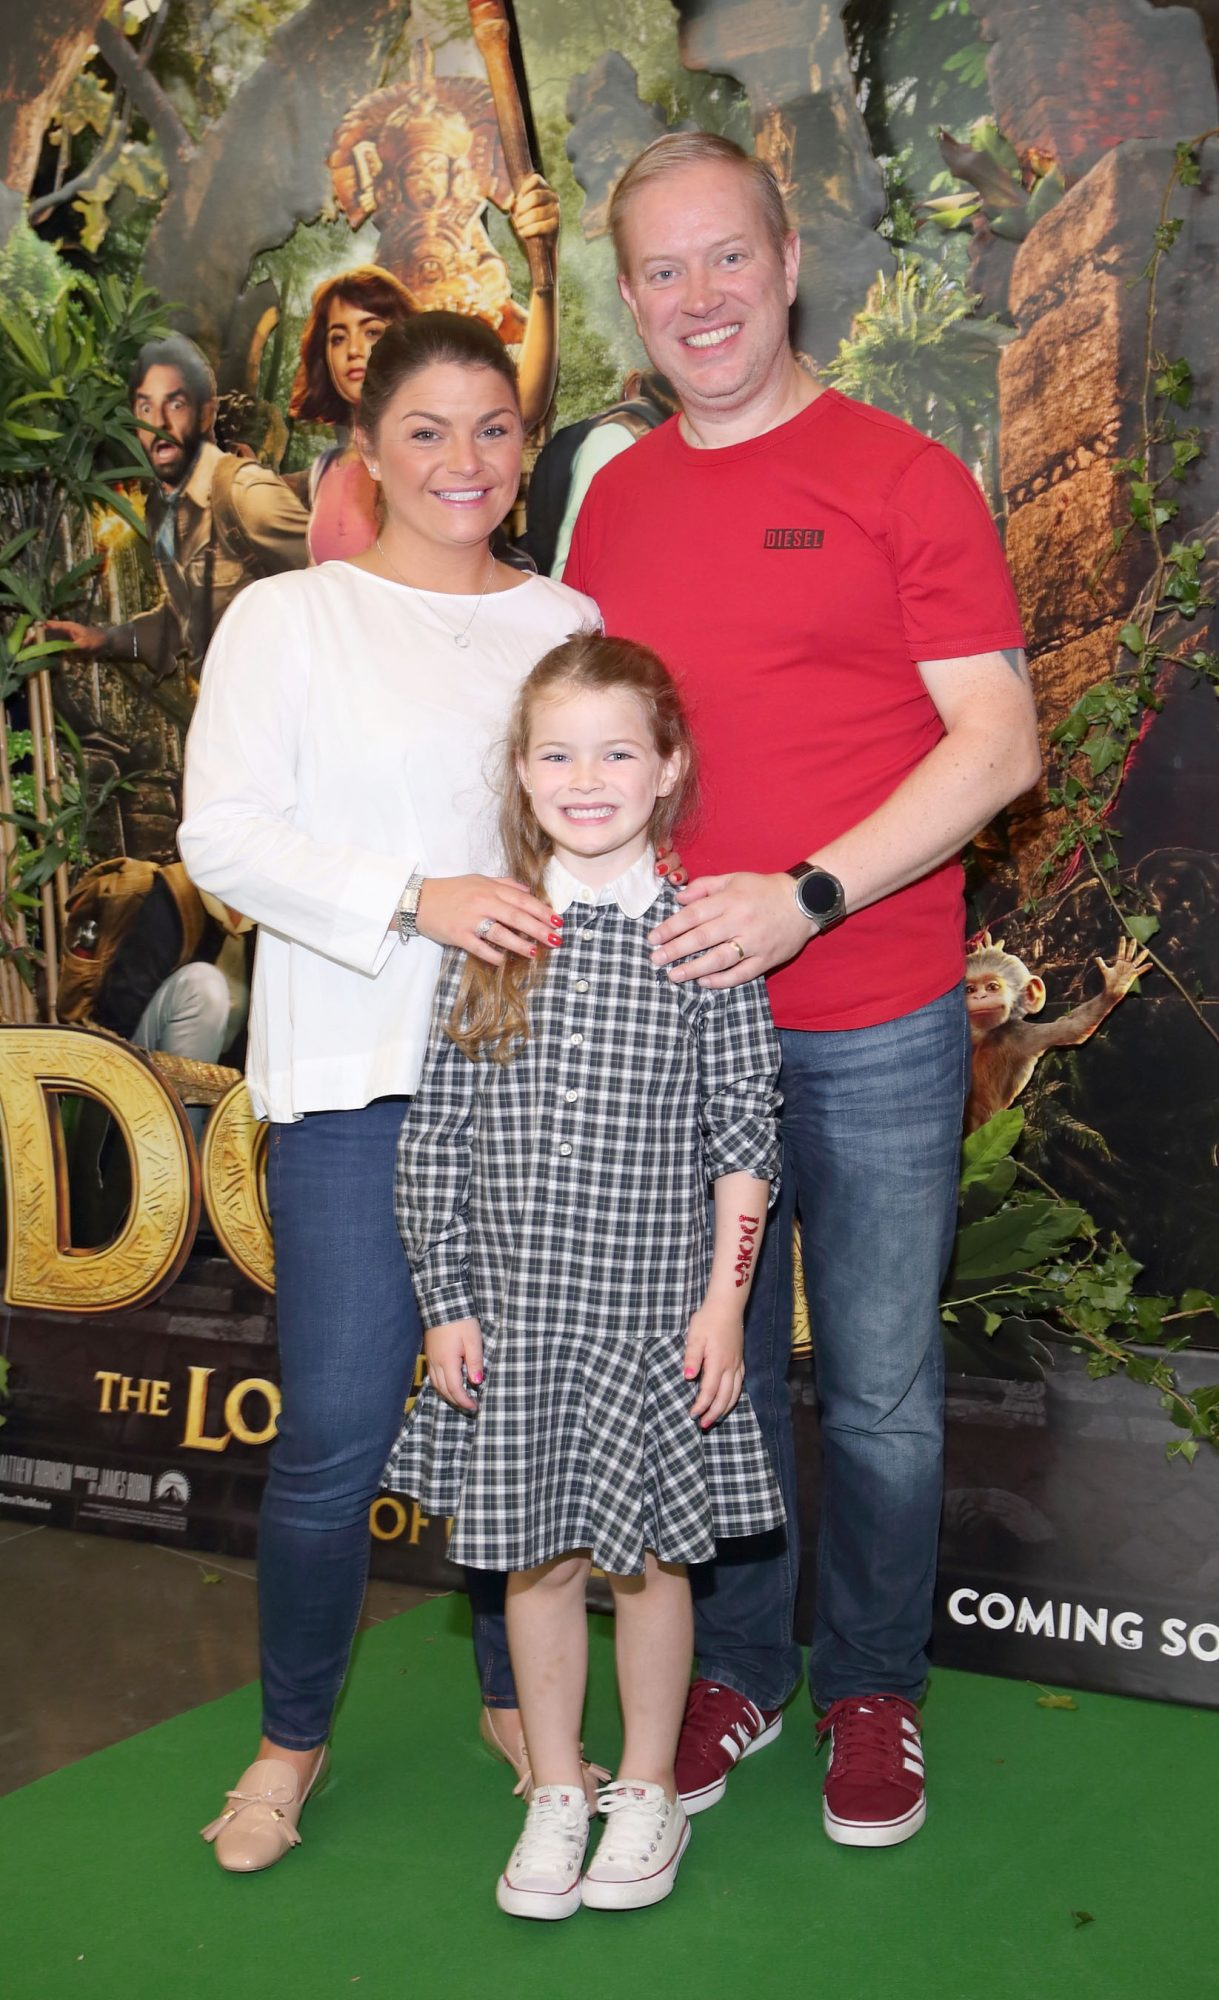 Lauren Nolan, Colin Nolan and Amber Nolan at the special preview screening of Dora and the Lost City of Gold at the Odeon Cinema in Point Square,Dublin. Pic Brian McEvoy Photography